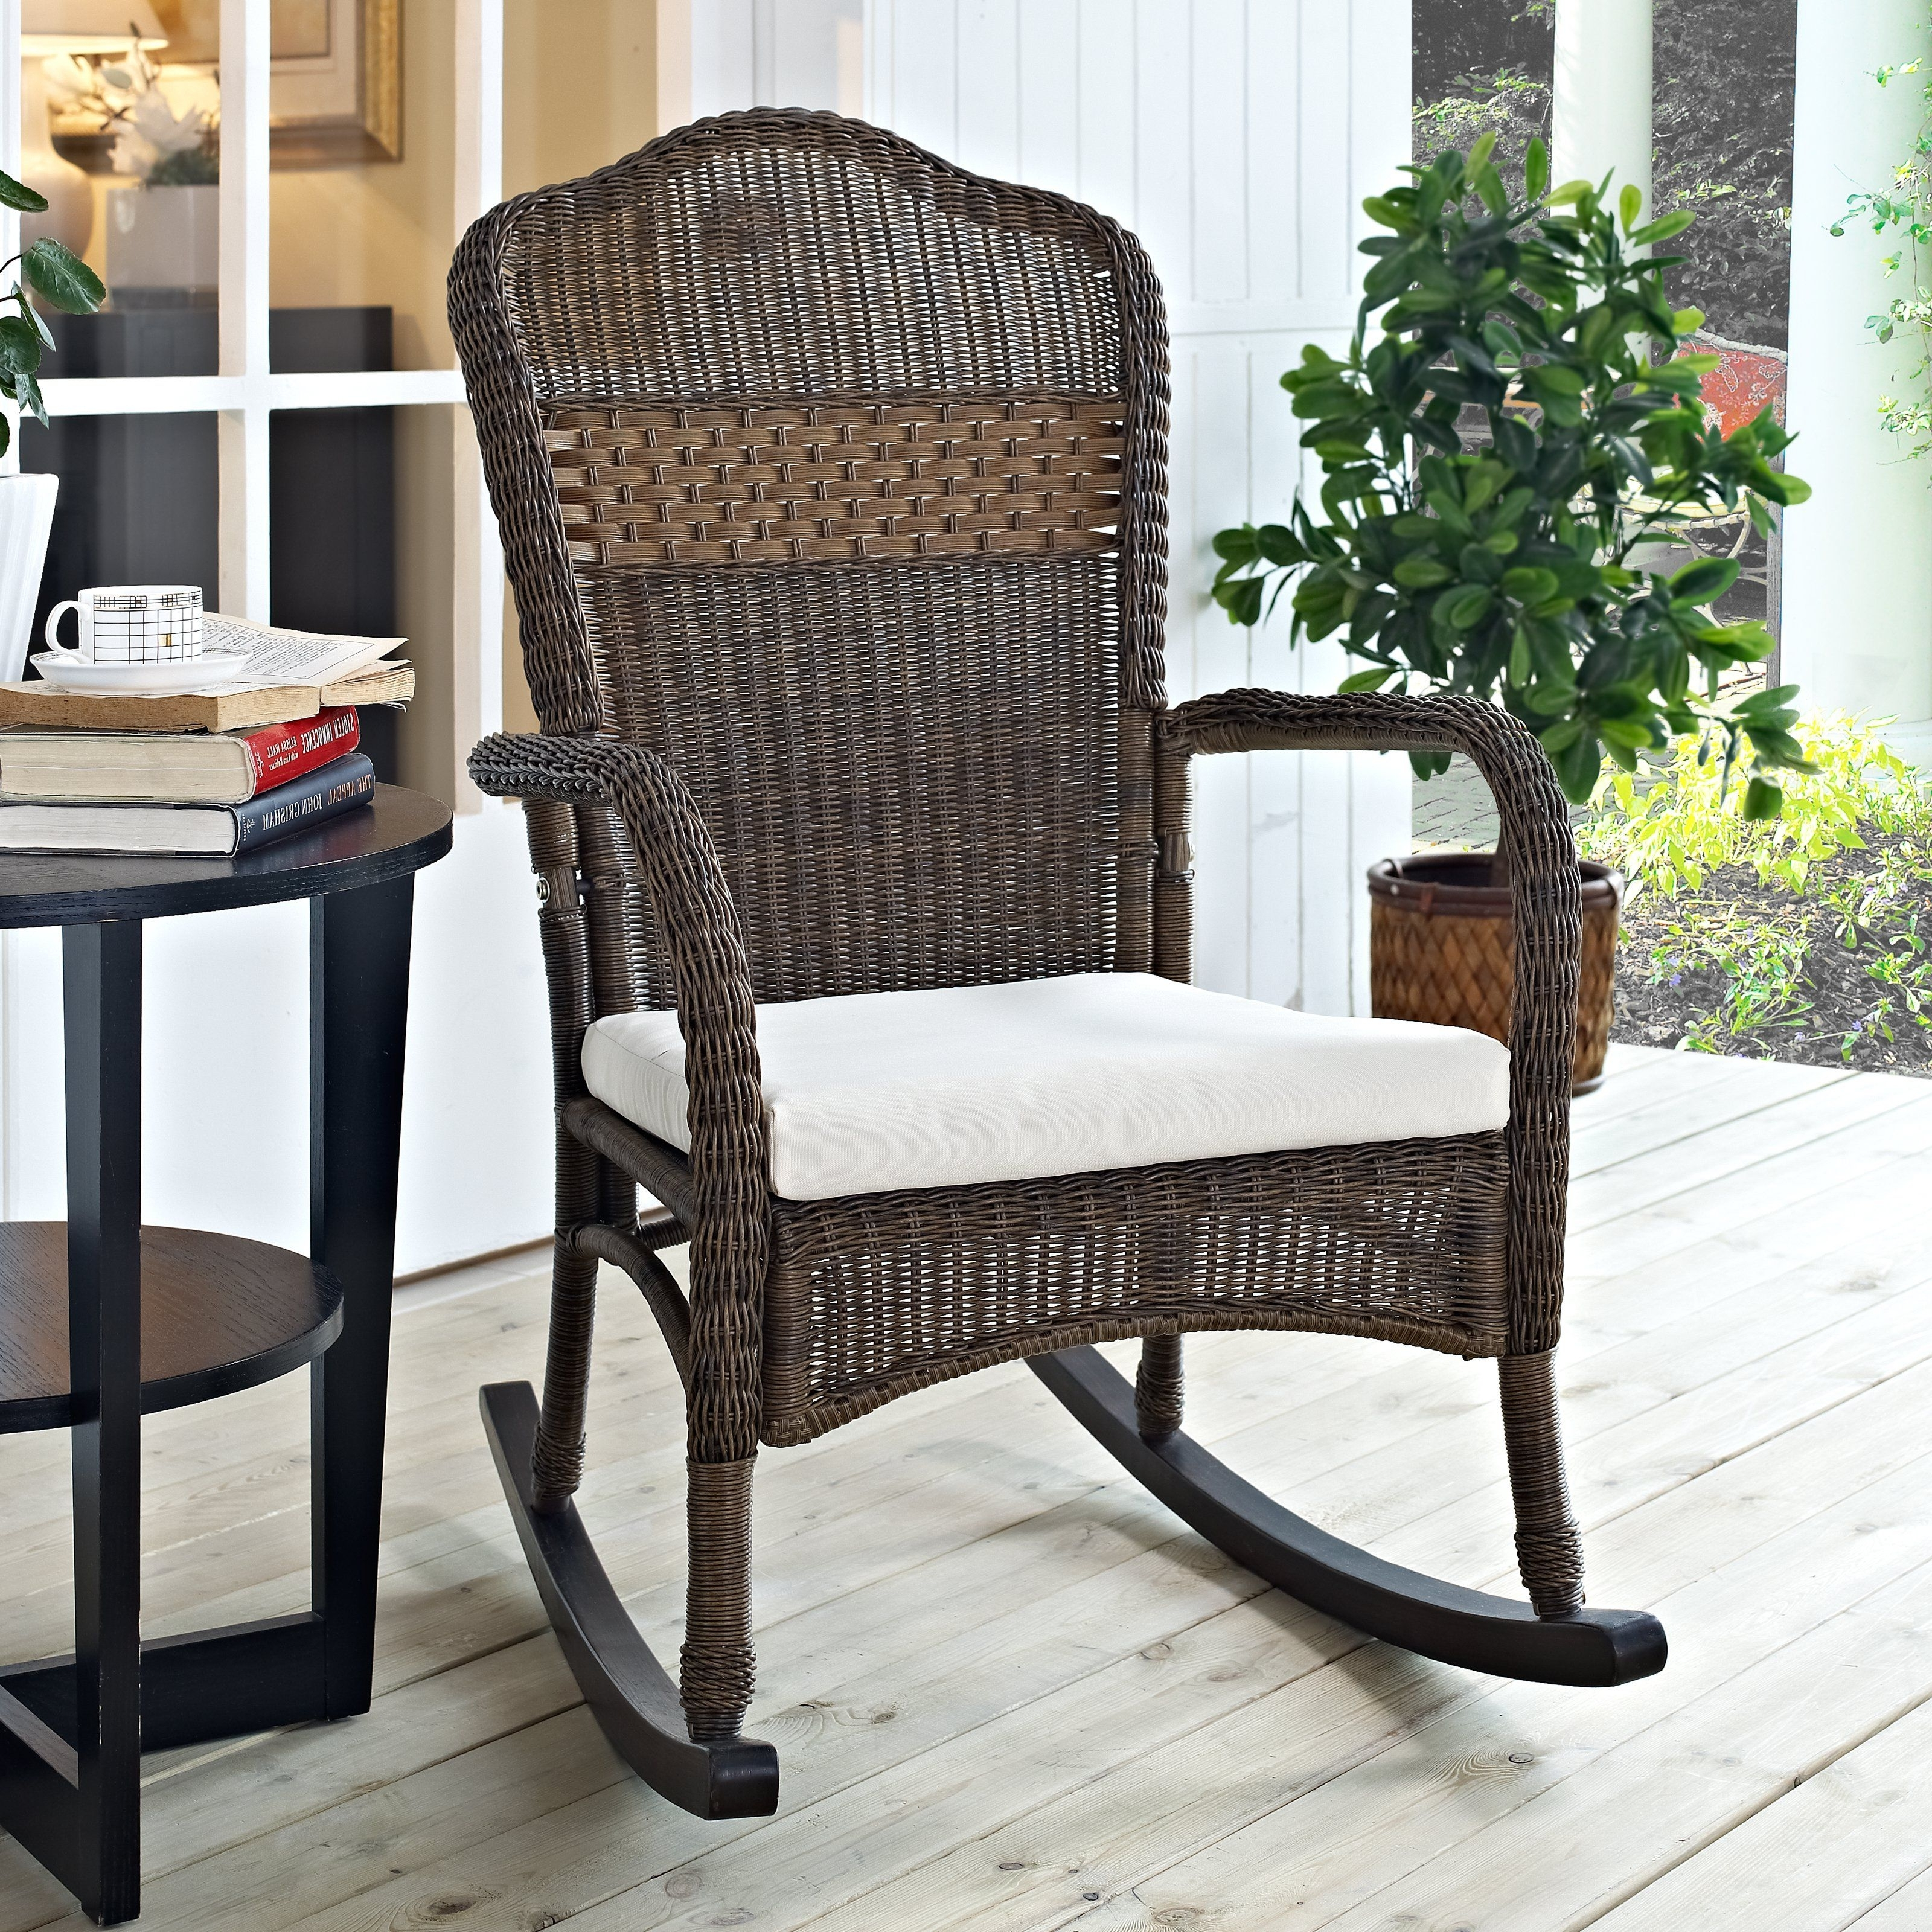 Newest Rattan Outdoor Rocking Chairs Intended For Outdoor Coral Coast Mocha Resin Wicker Rocking Chair With Beige (View 3 of 20)